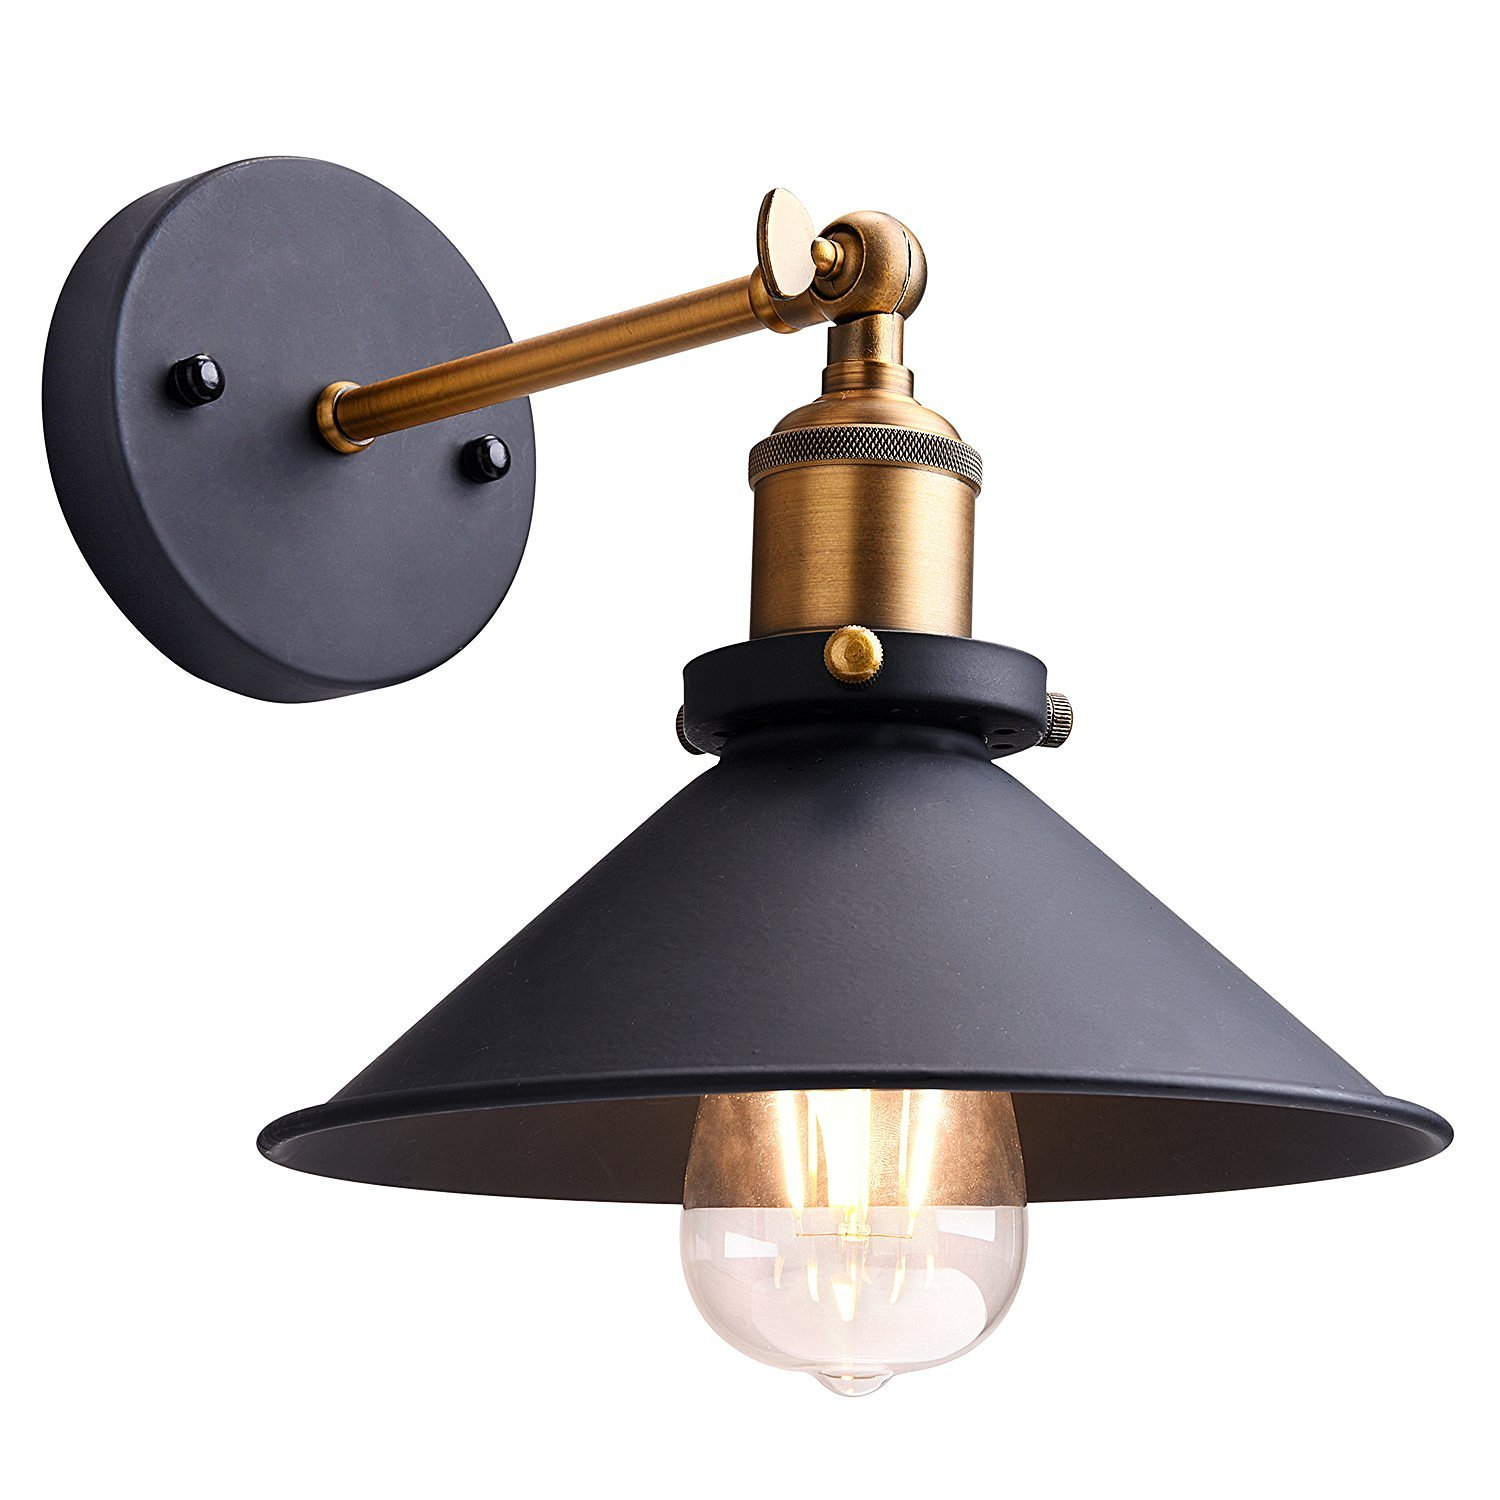 Sanyi Vintage Wall Light Fixture Industrial Edison